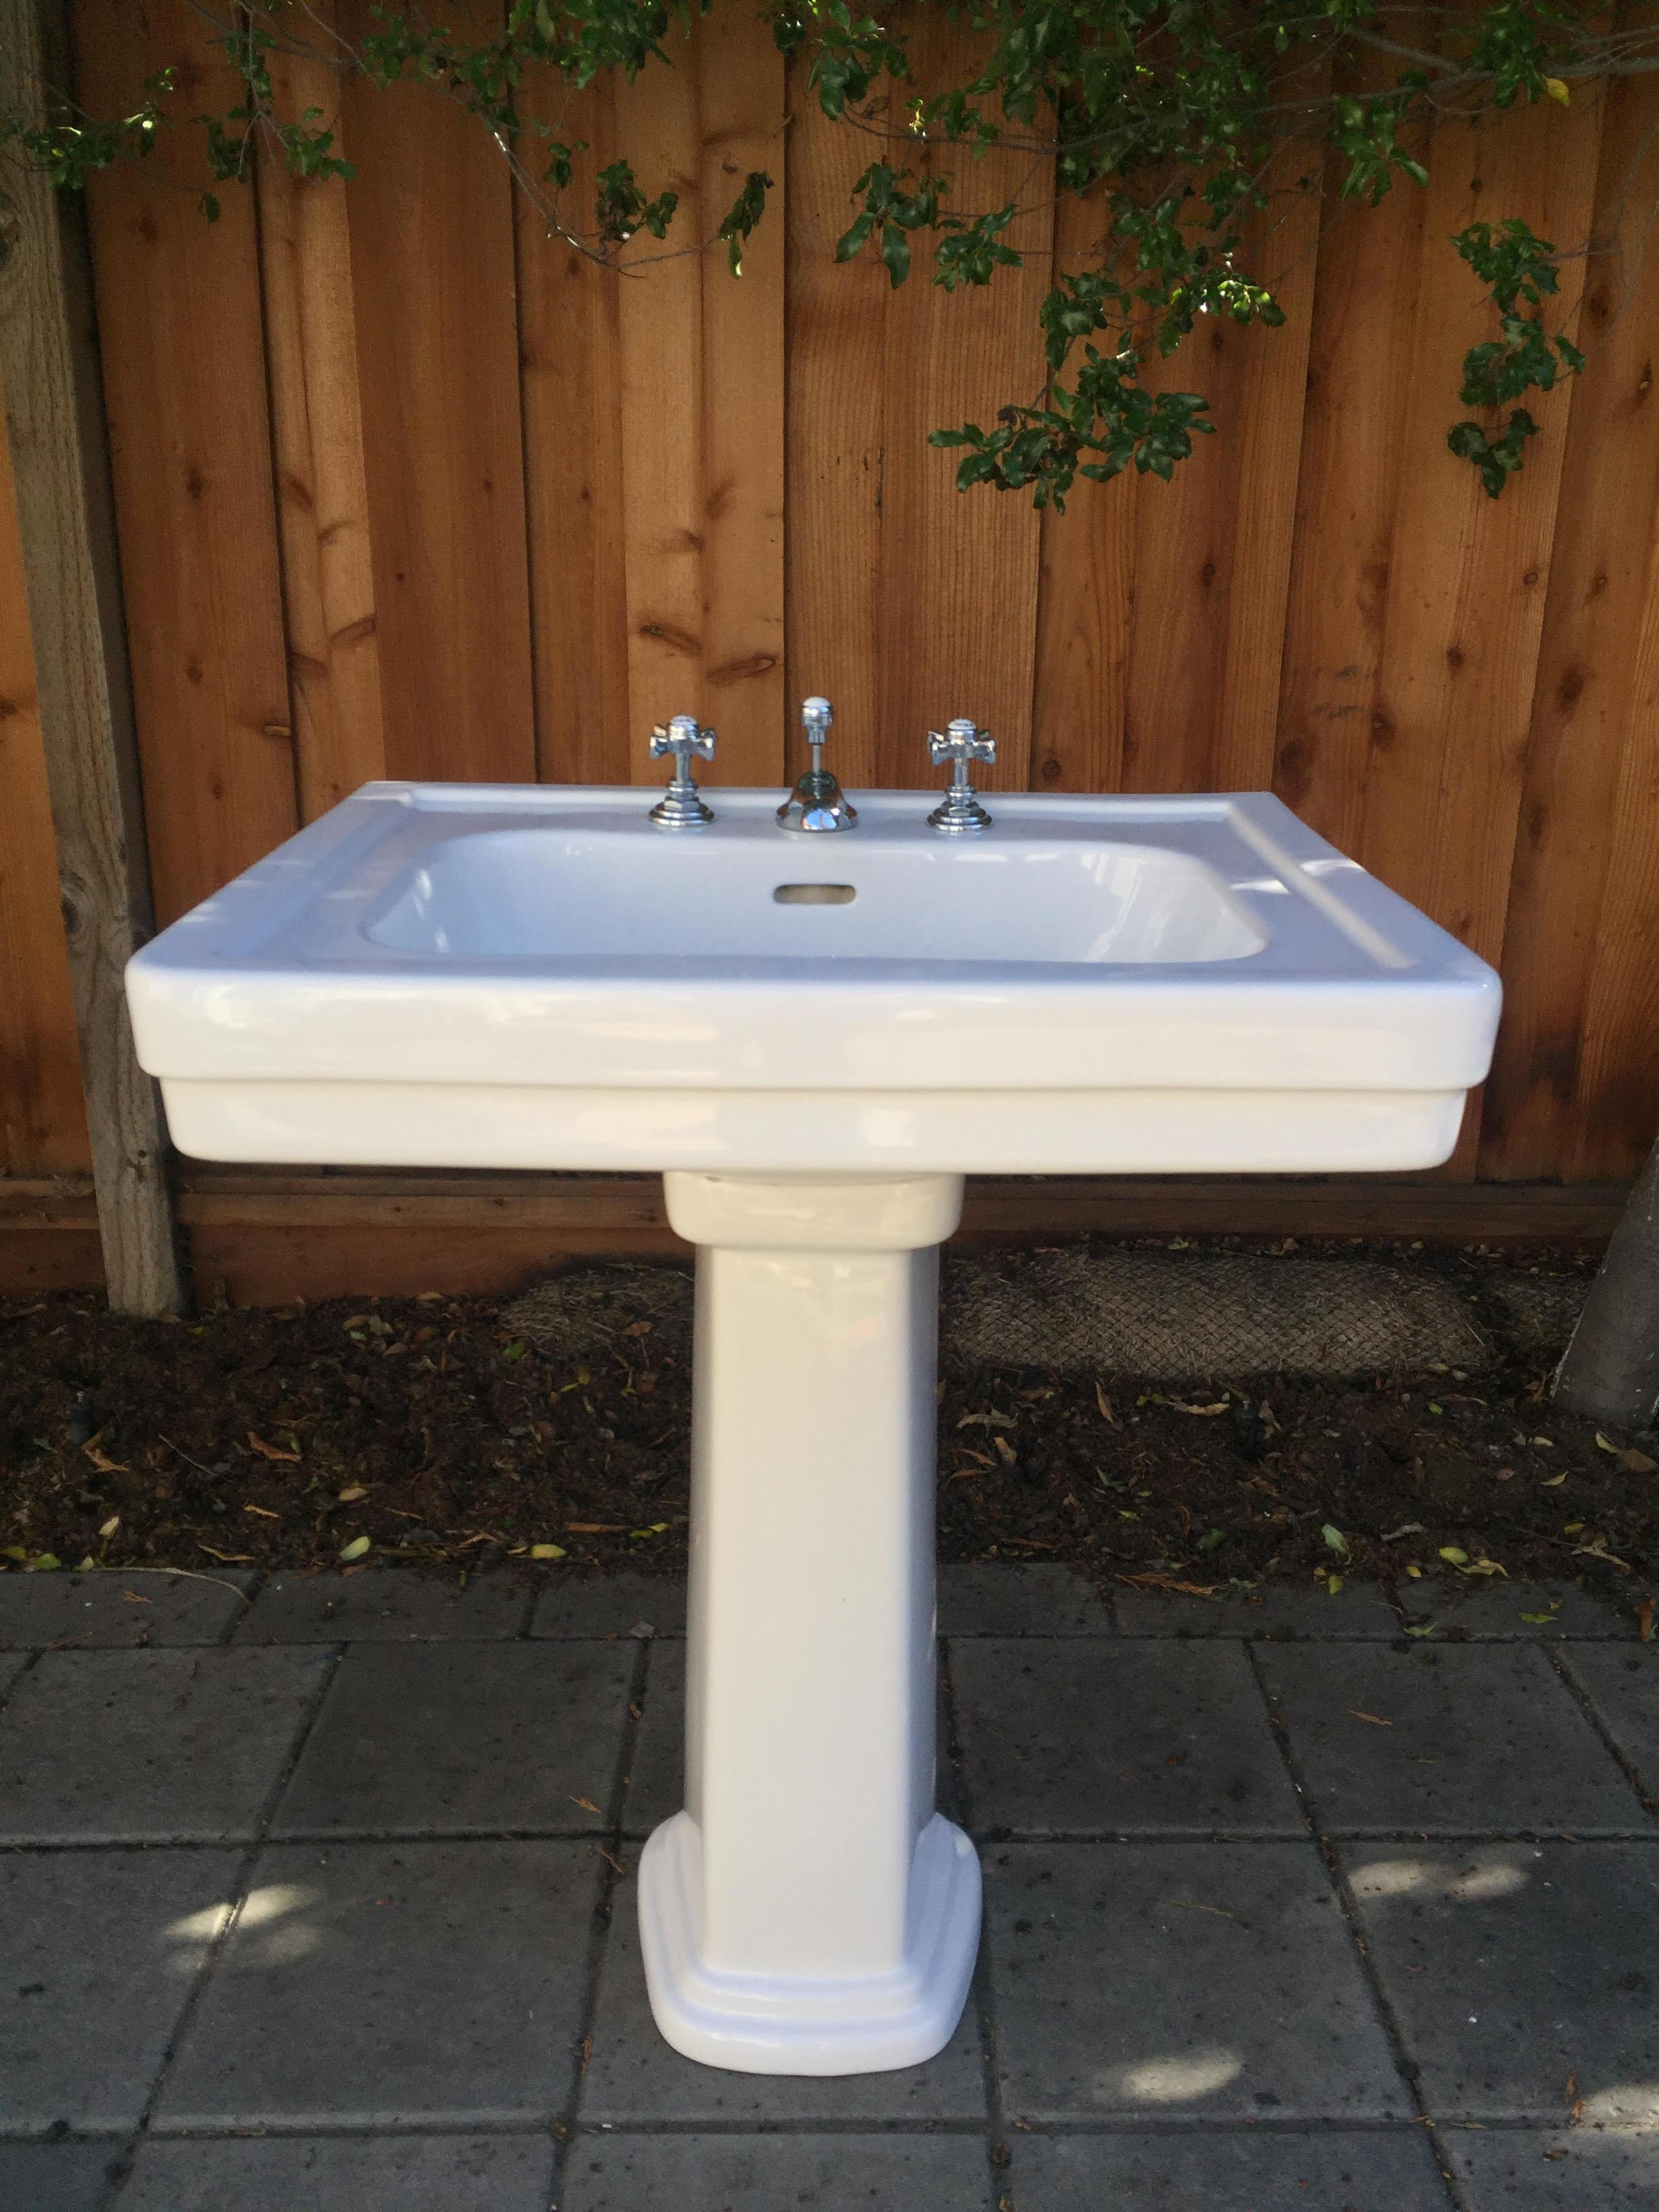 This Sink Pedestal Is A Traditional Style With A Spacious Basin, Large  Backsplash, And